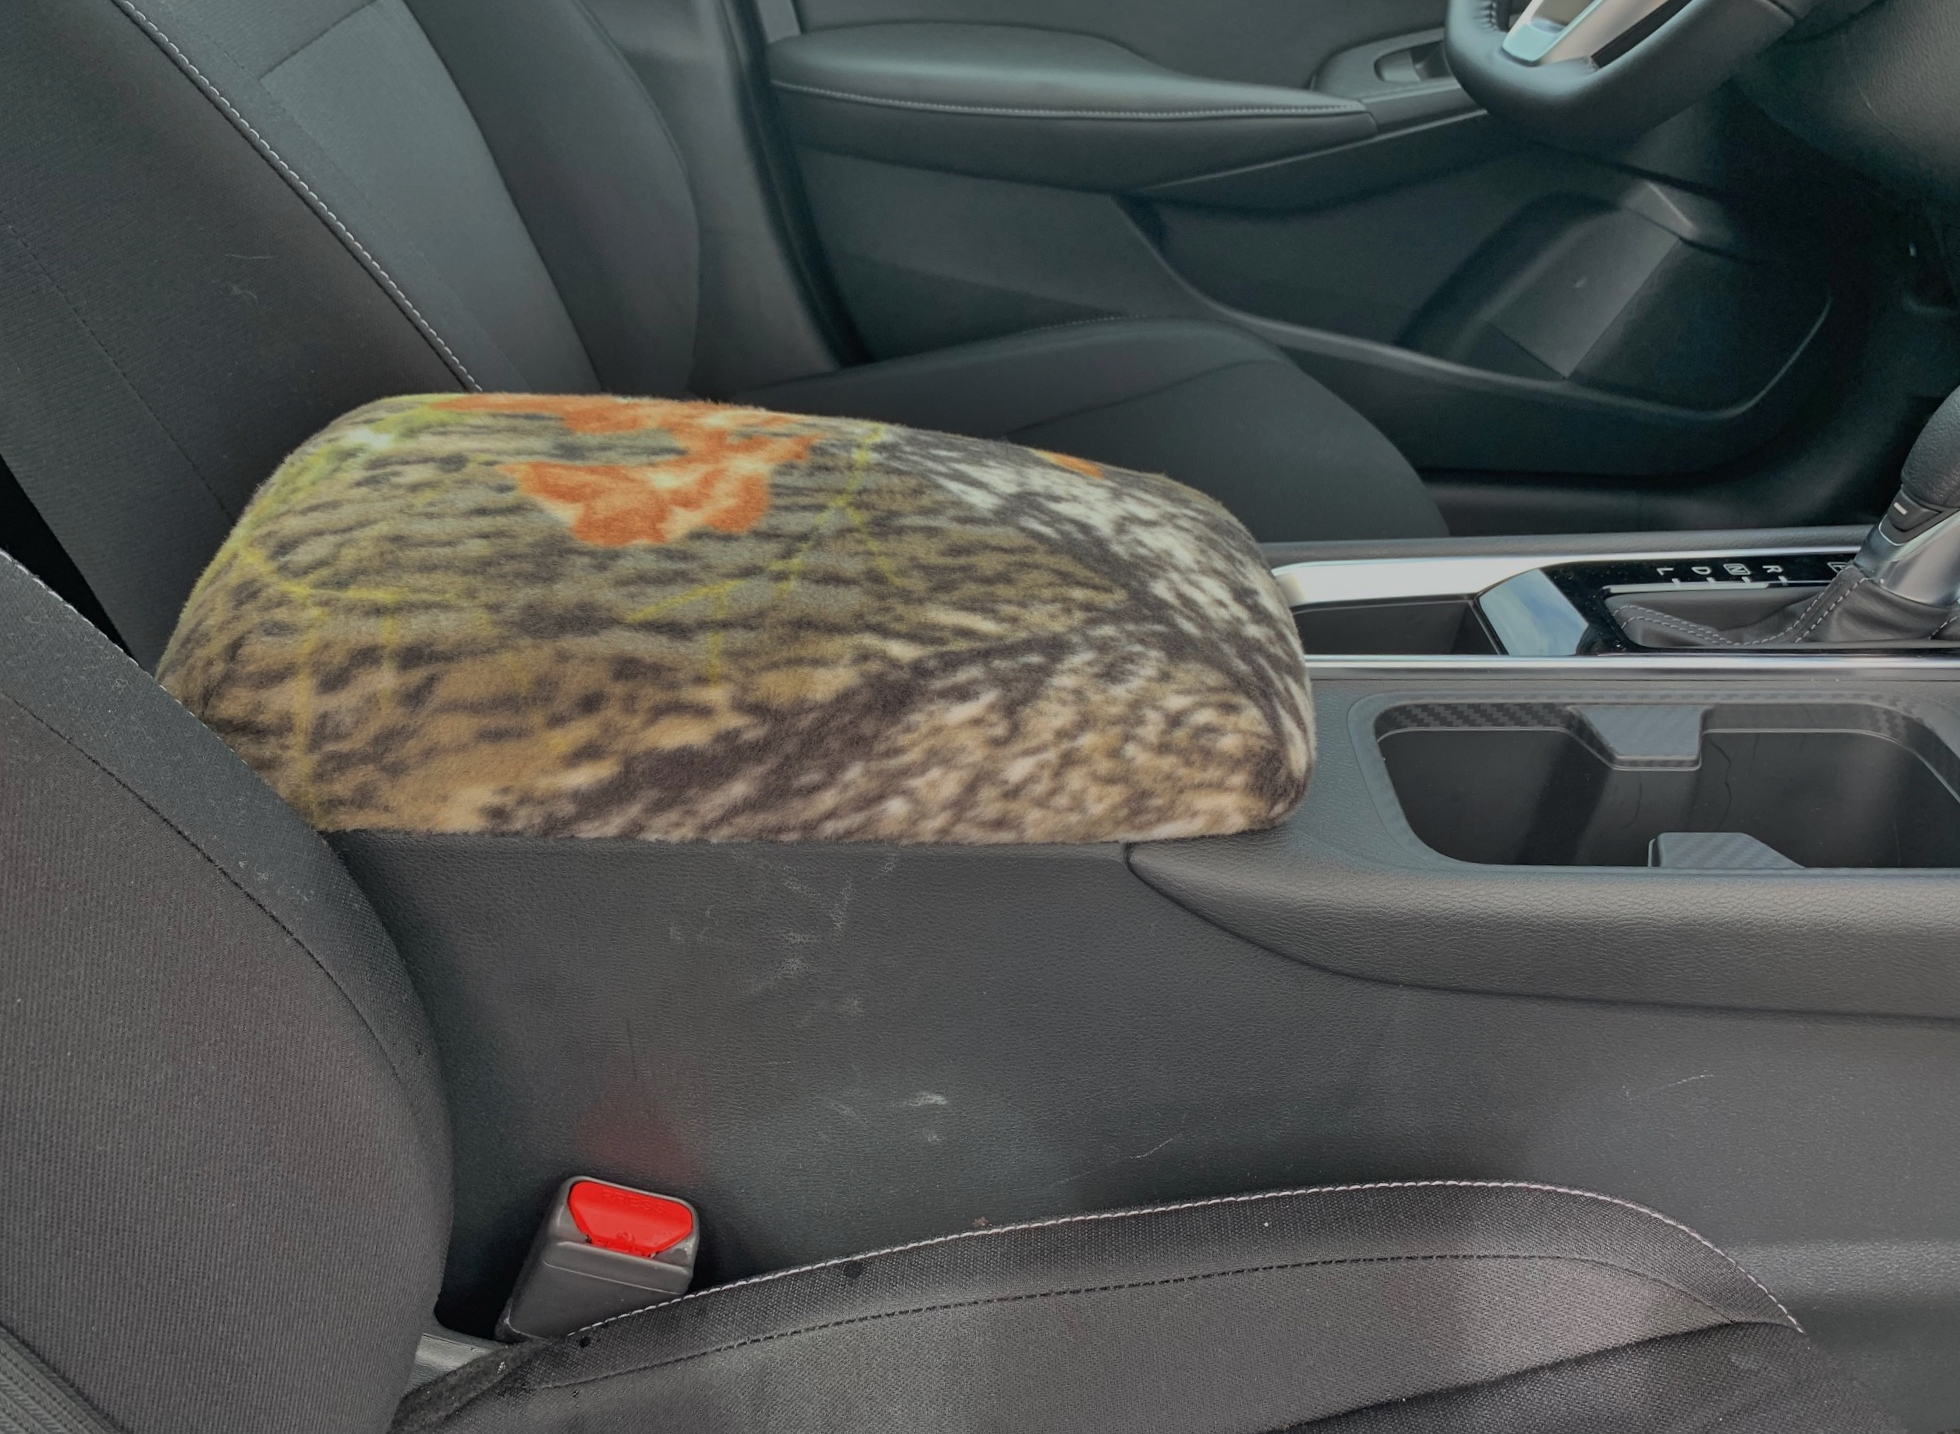 Buy Fleece Center Console Armrest Cover fits the Nissan Sentra 2020-2021